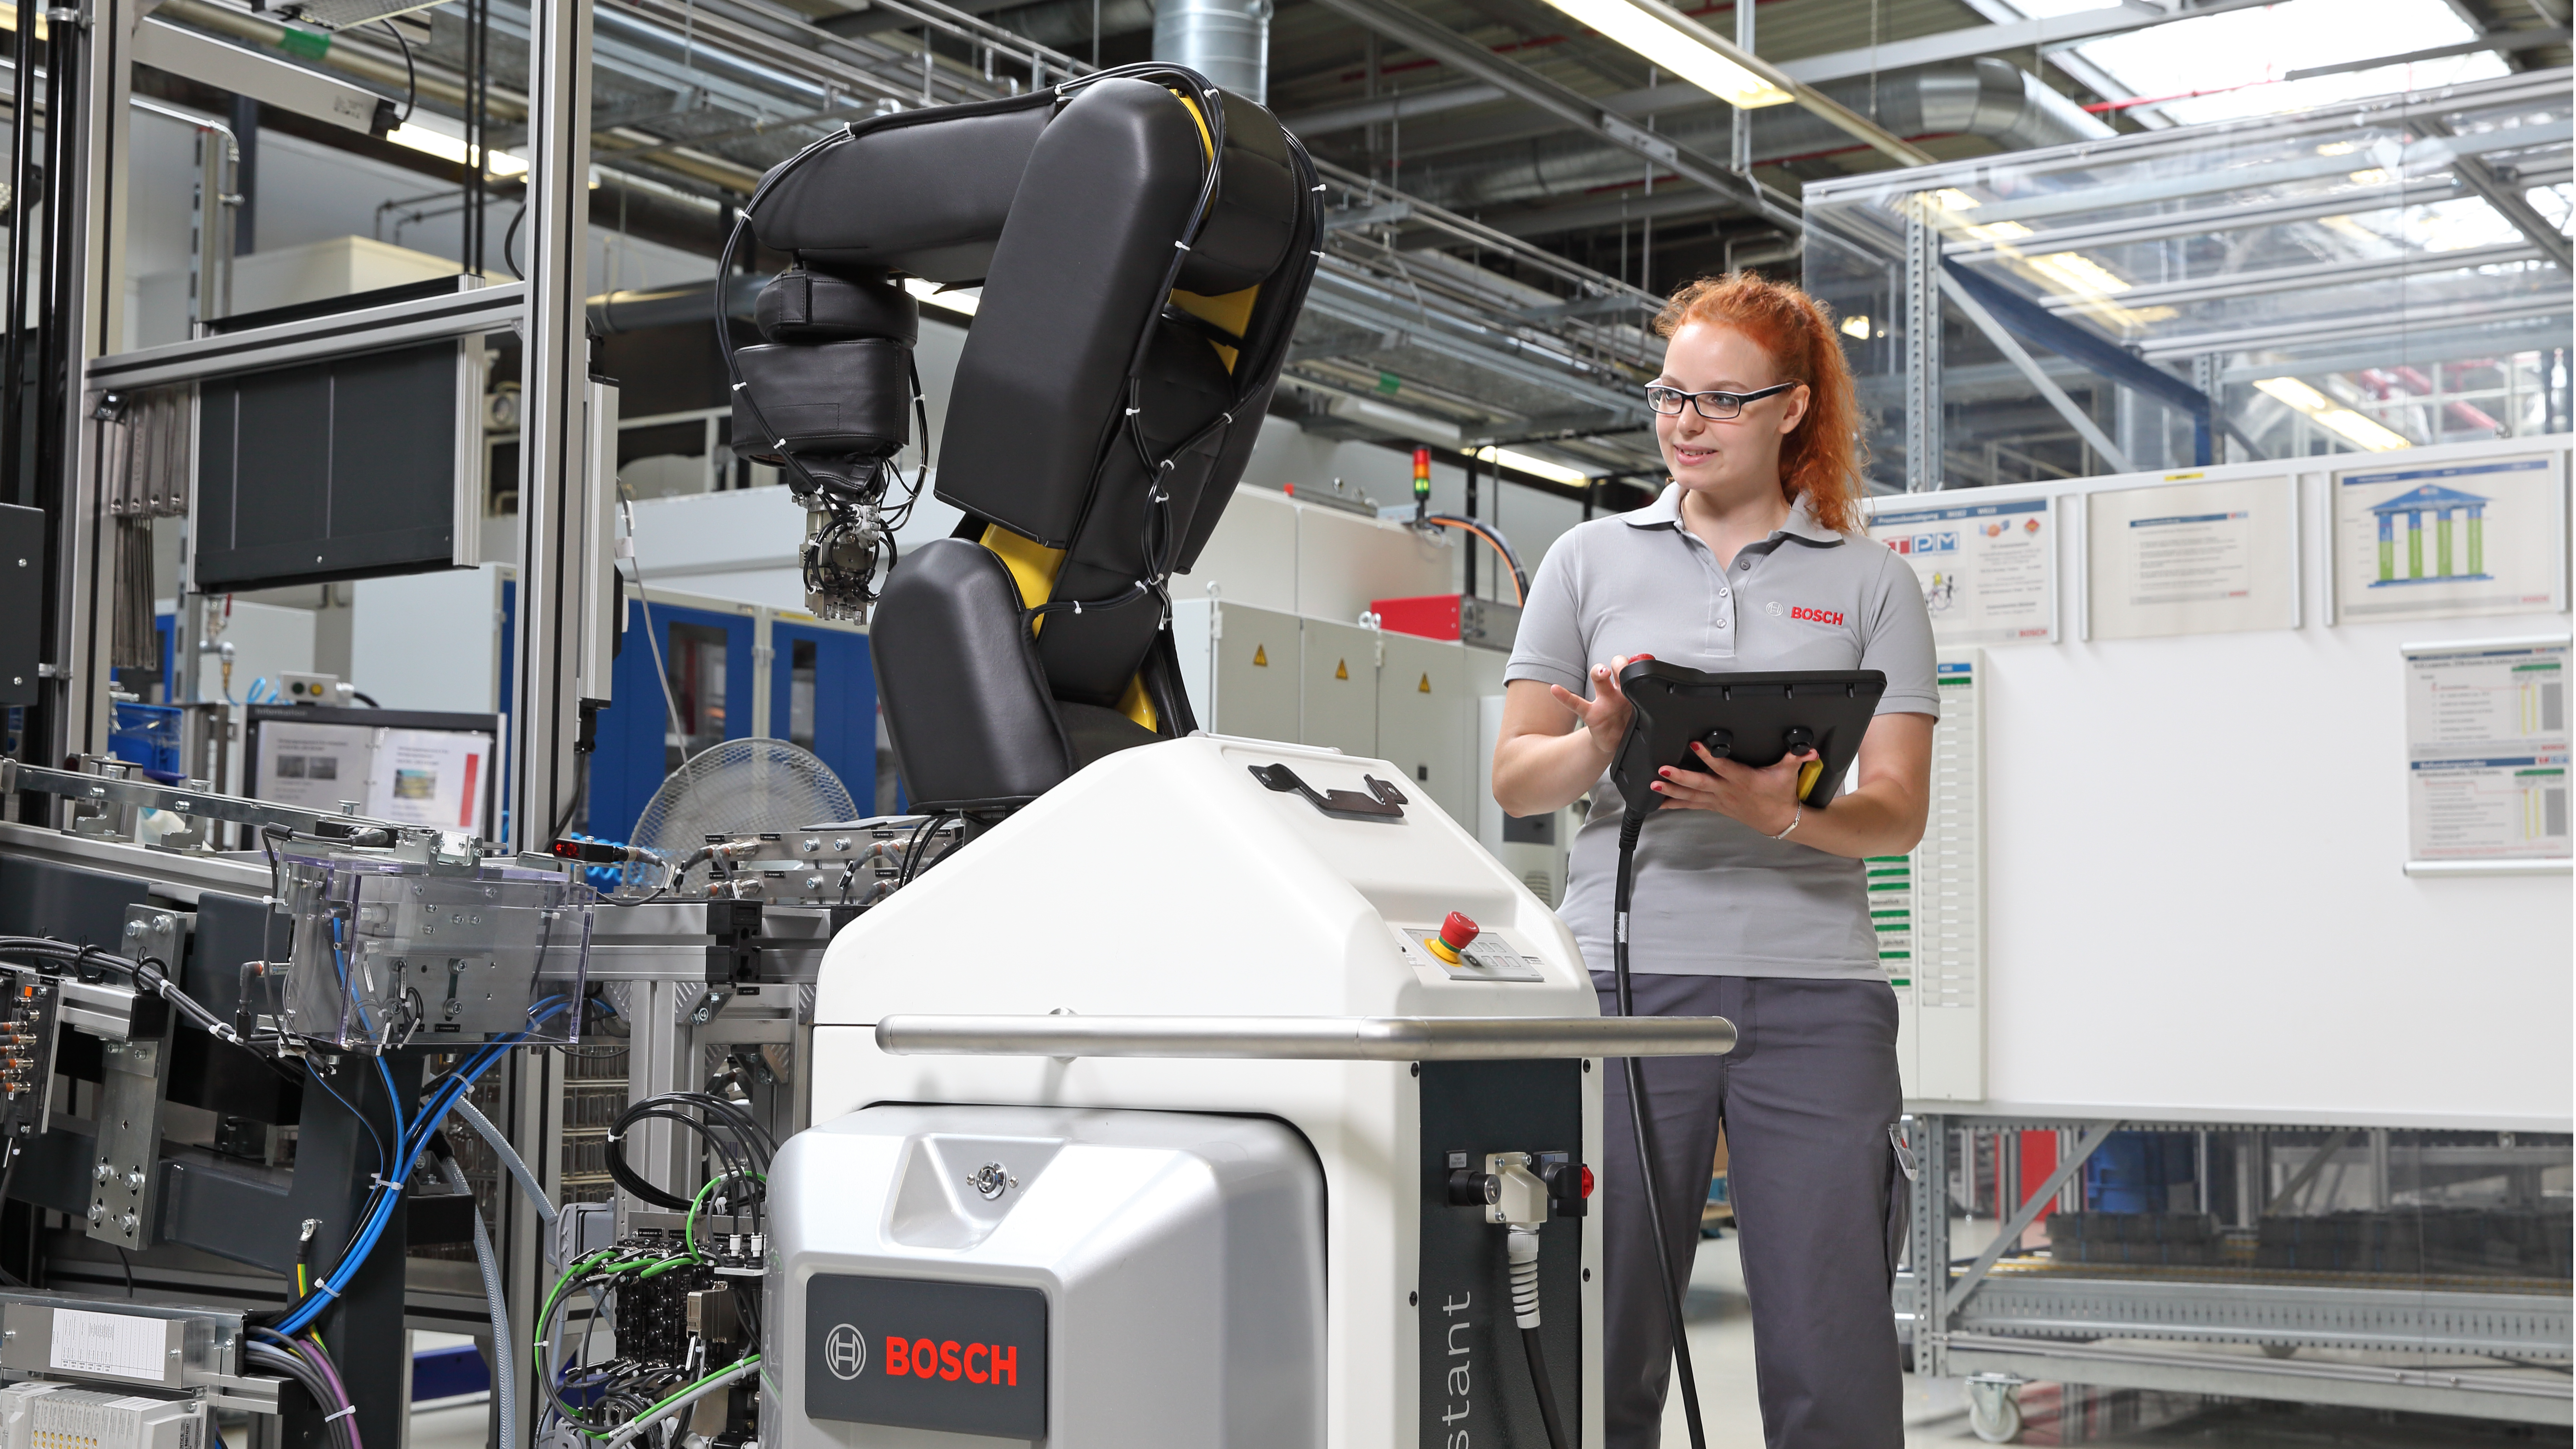 Bosch extends its Industry 4 0 portfolio - Bosch Media Service